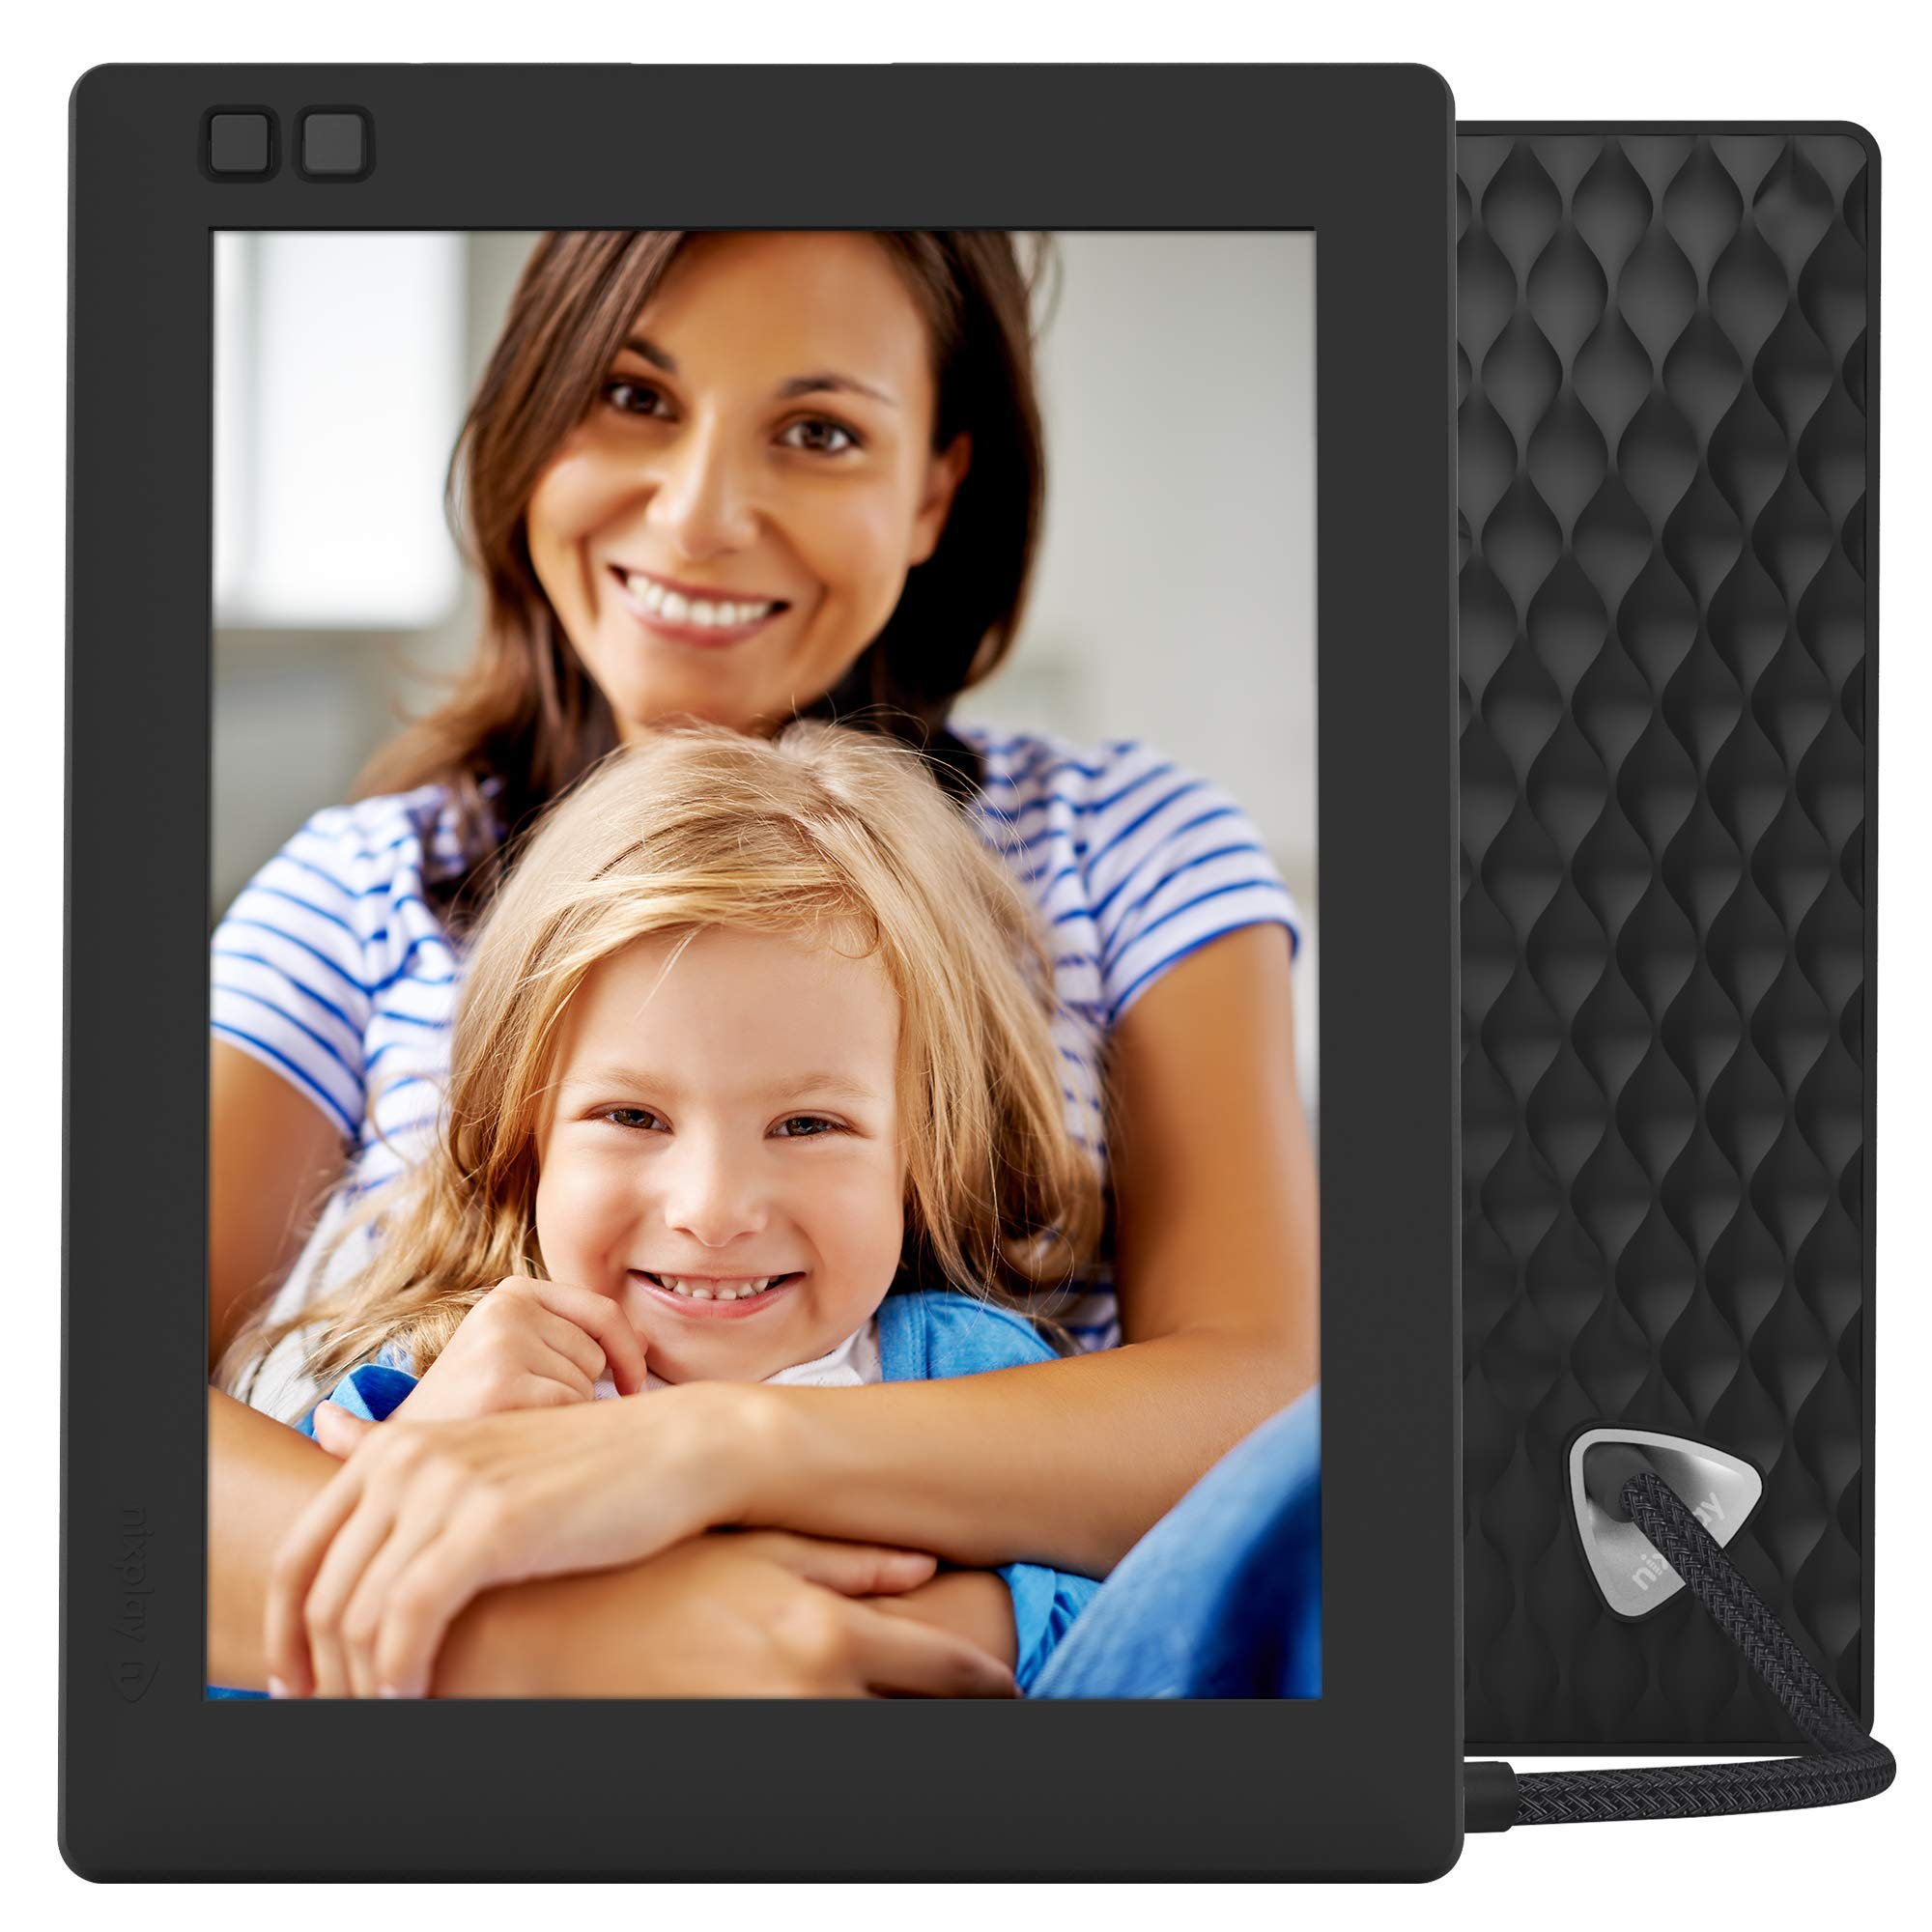 NIXPLAY Seed WiFi Digital Photo Frame 8 inch W08D, Black. Show Photos on Your Frame via Mobile App or Email. Display HD Pictures and Videos.